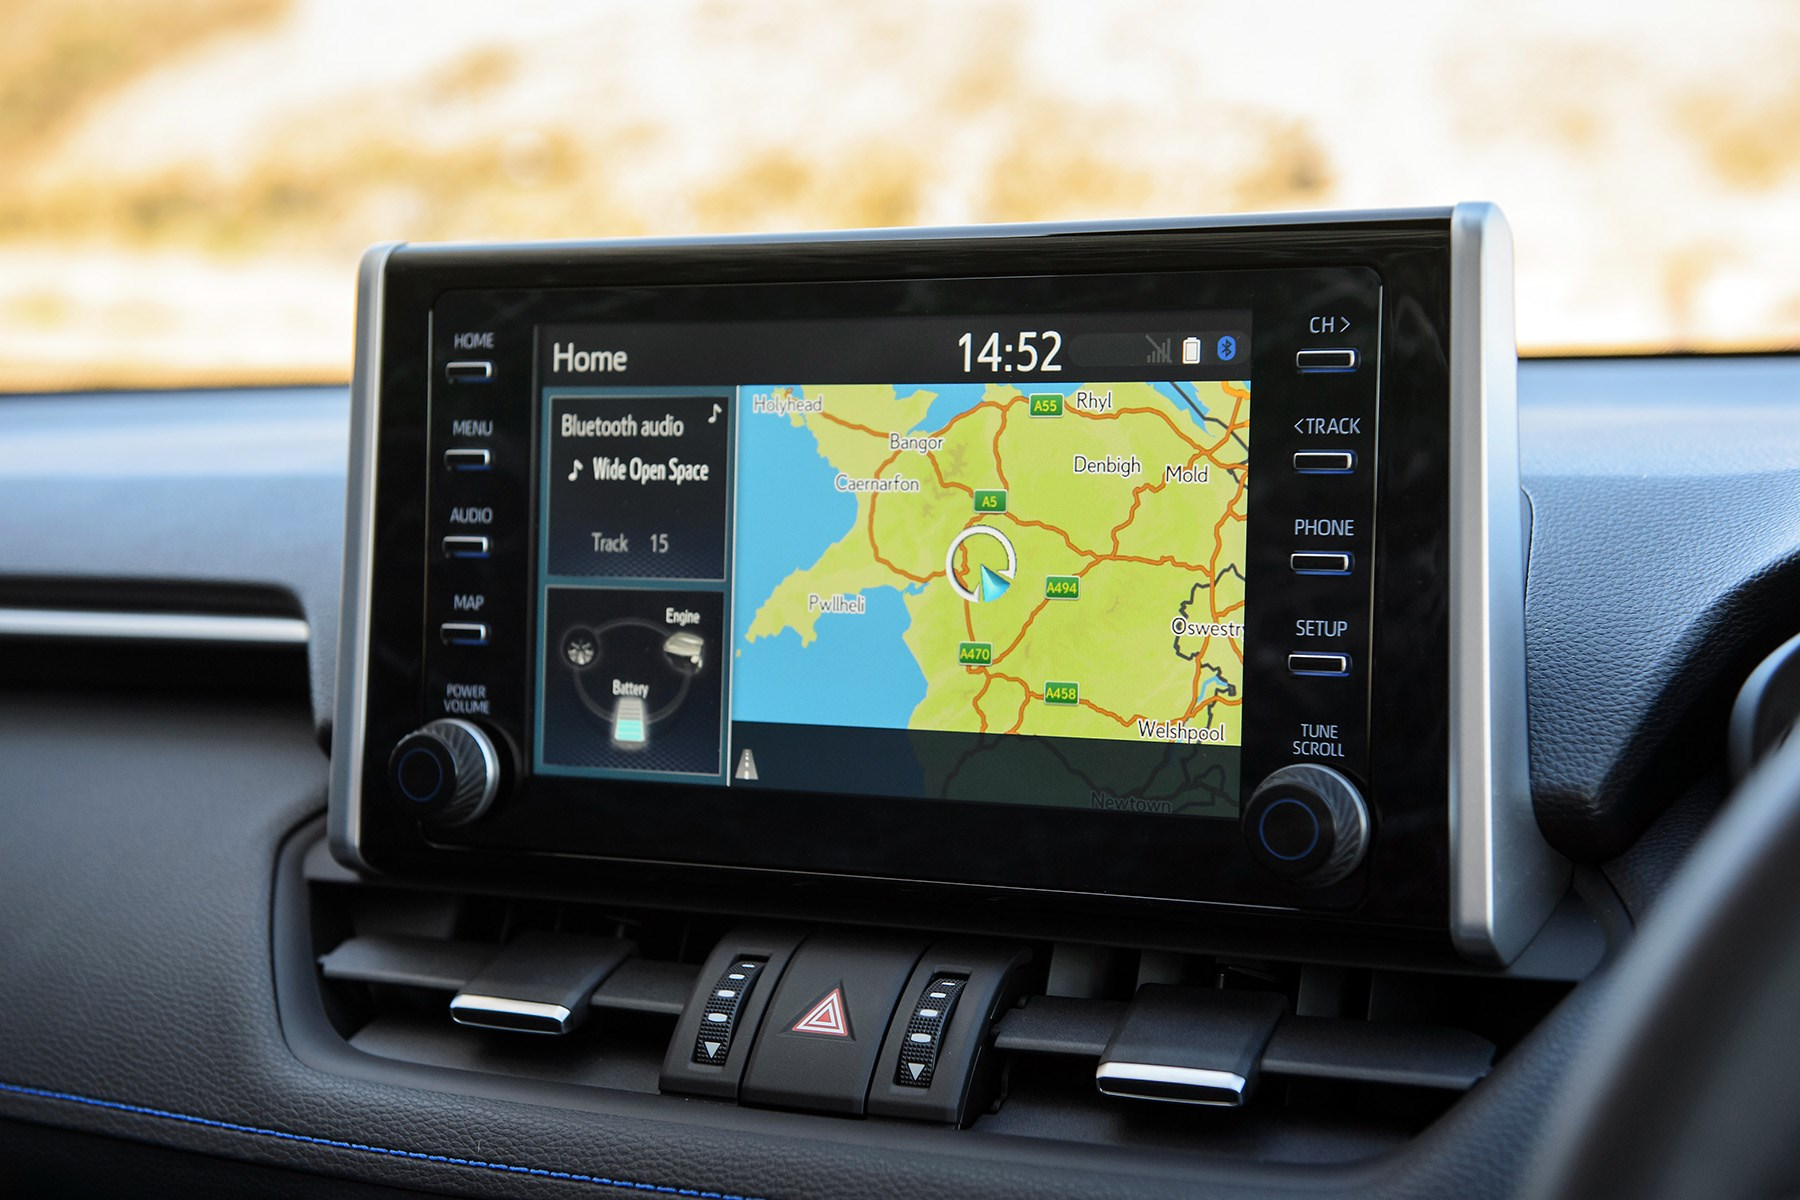 Toyota RAV4 Hybrid 2019 media touchscreen